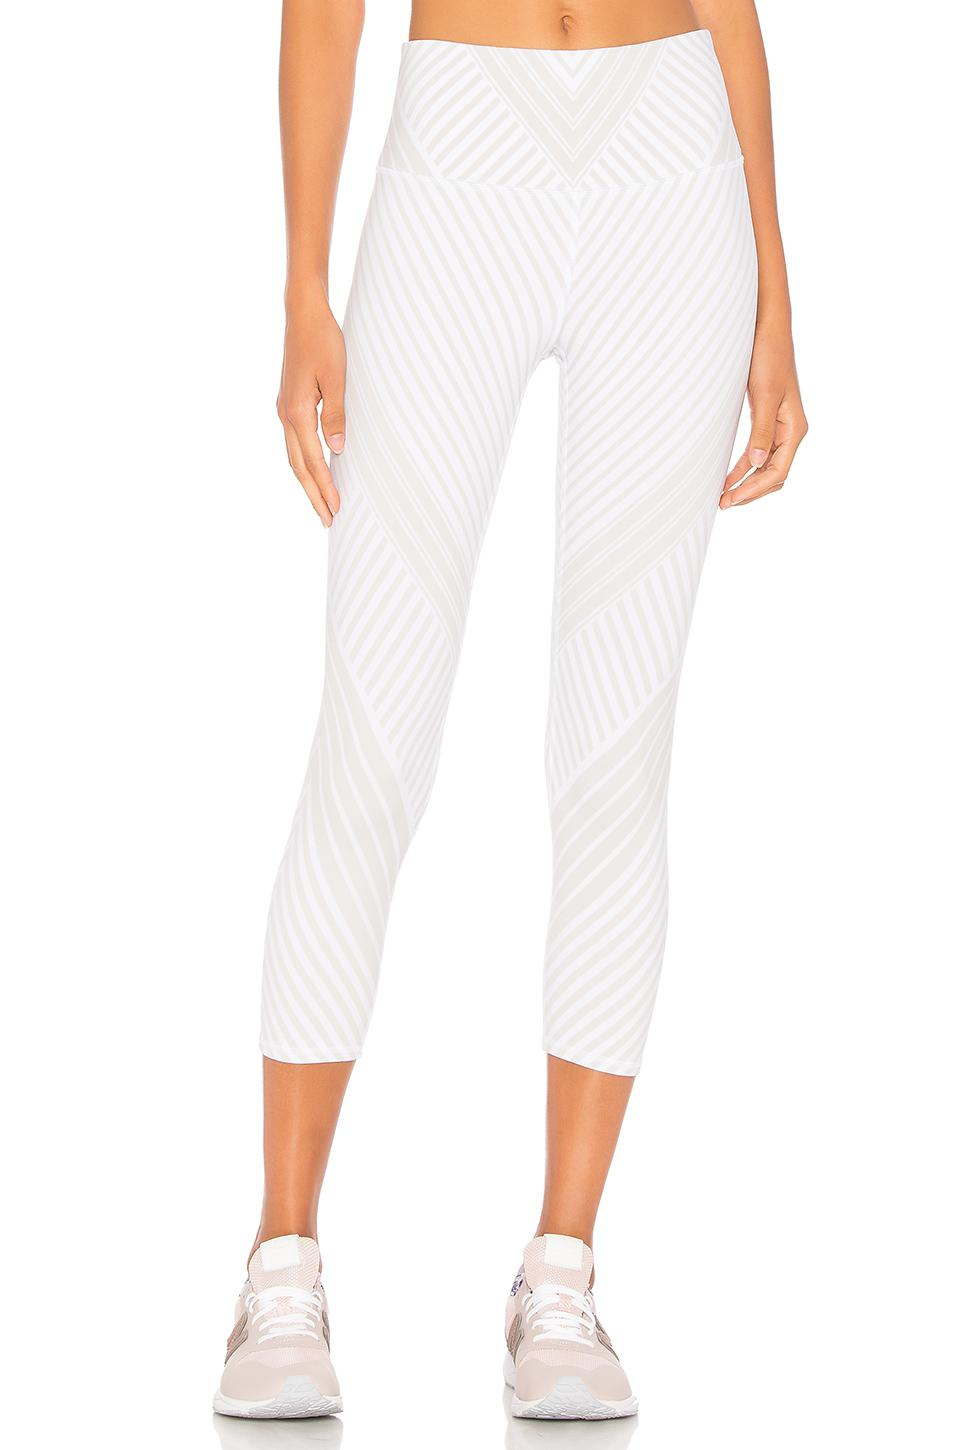 Alo Yoga High Waist Airbrush Capri In White